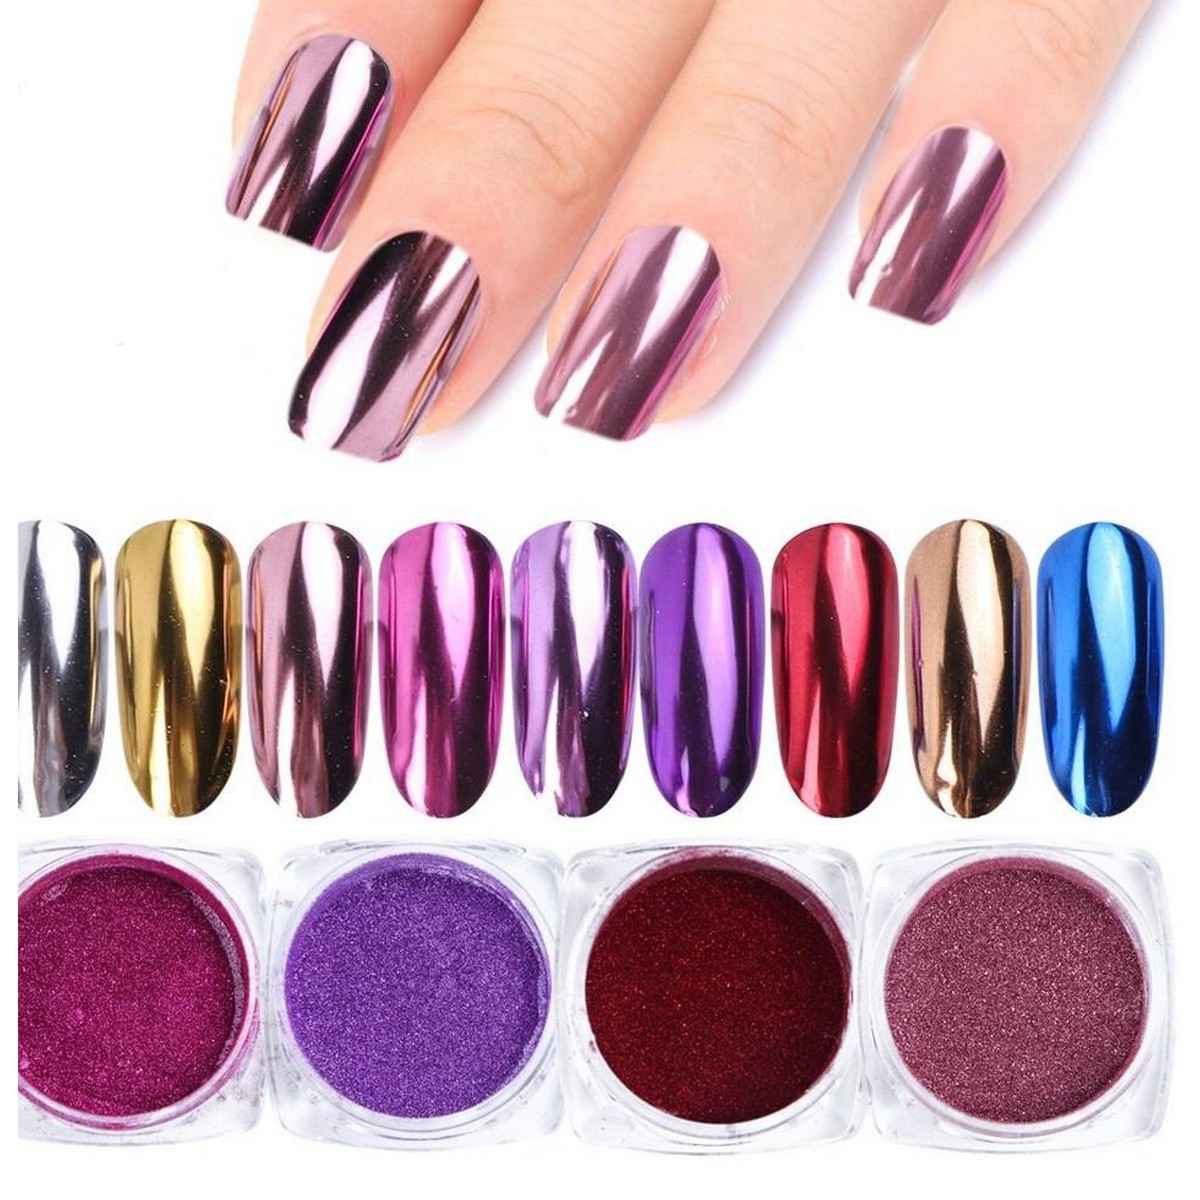 pack of 6  Mirror Glitter Nail Chrome Pigment Shell Dazzling DIY Salon Micro Holographic Powder Laser Nail Art Decorations Manicure